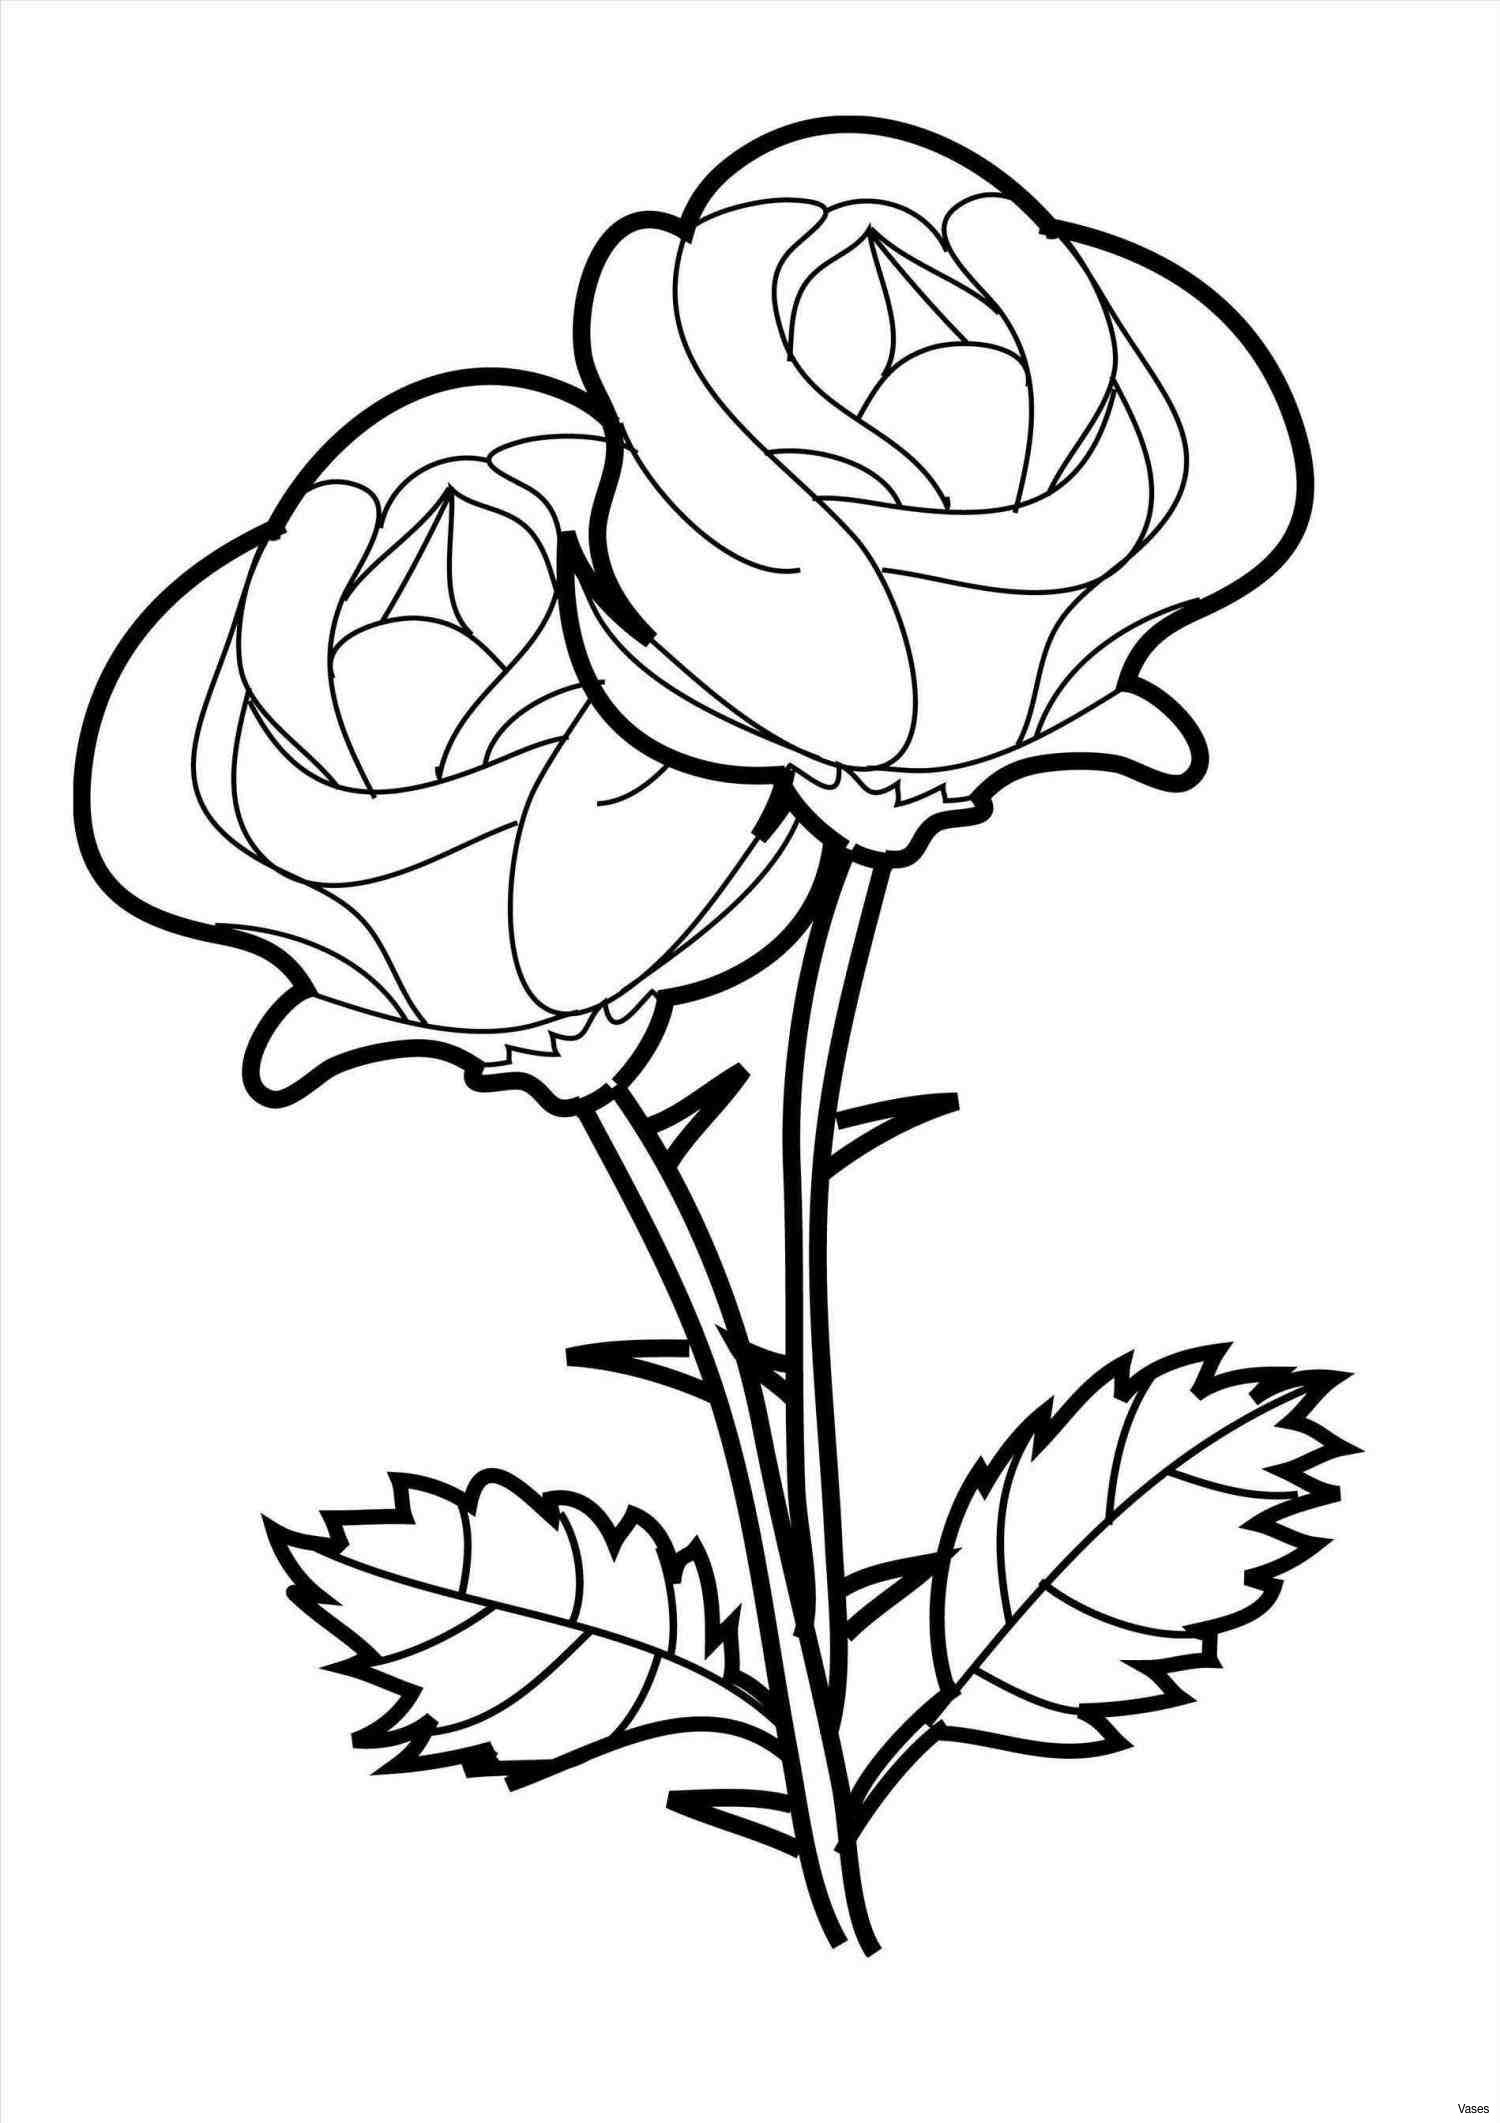 Flower drawings free download. Bouquet clipart drawing